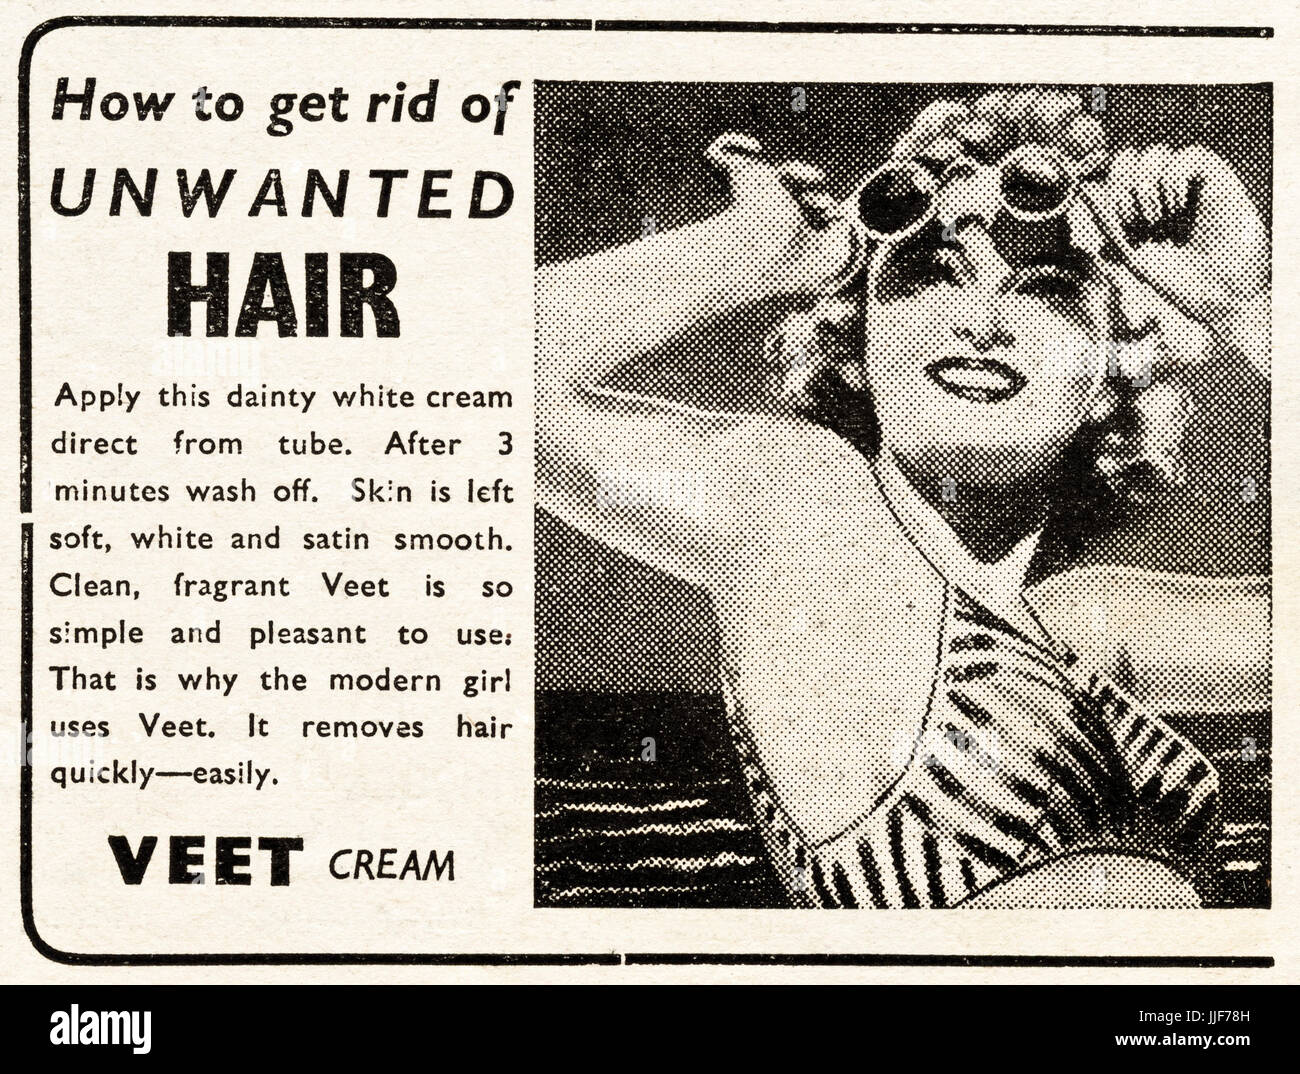 1940s original old vintage advertisement advertising Veet hair removal cream in magazine circa 1946 when supplies - Stock Image